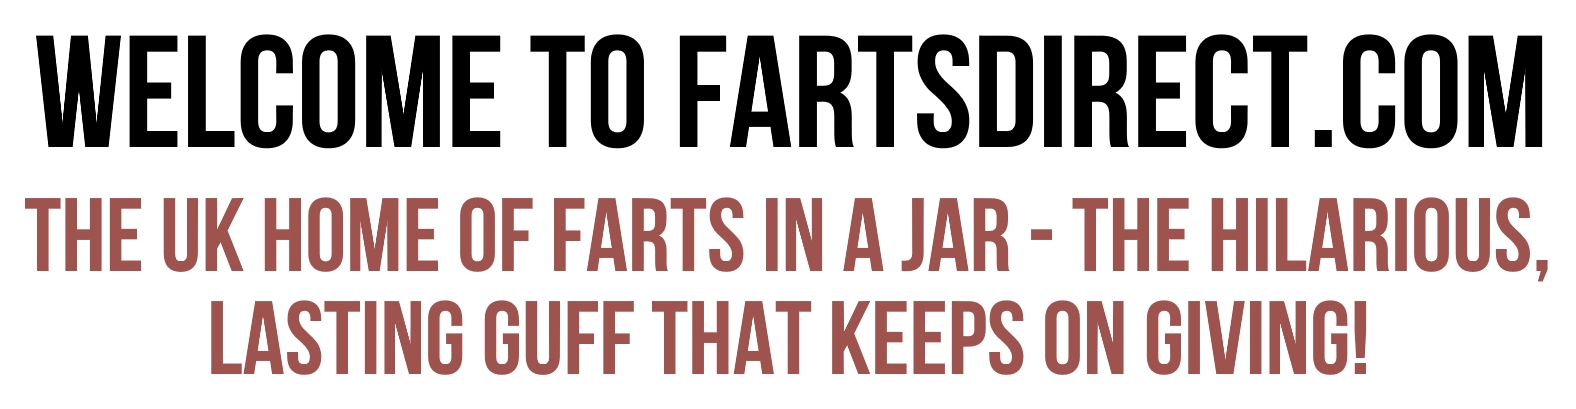 Welcome to Farts Direct dot com. The UK Home of Farts in a Jar. The Hilarious, Lasting Guff That Keeps on Giving